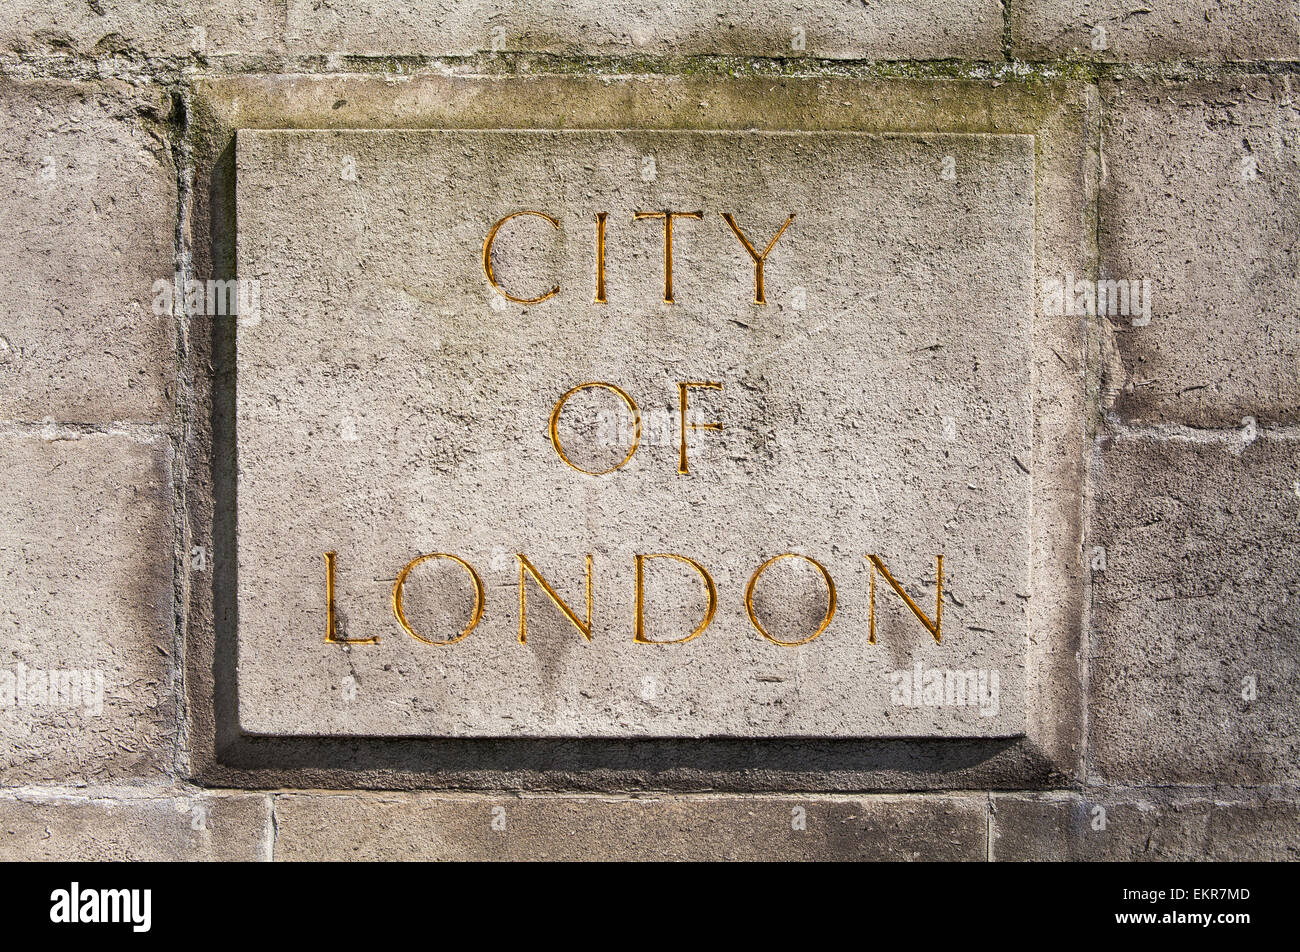 An engraved City of London stone plaque. - Stock Image